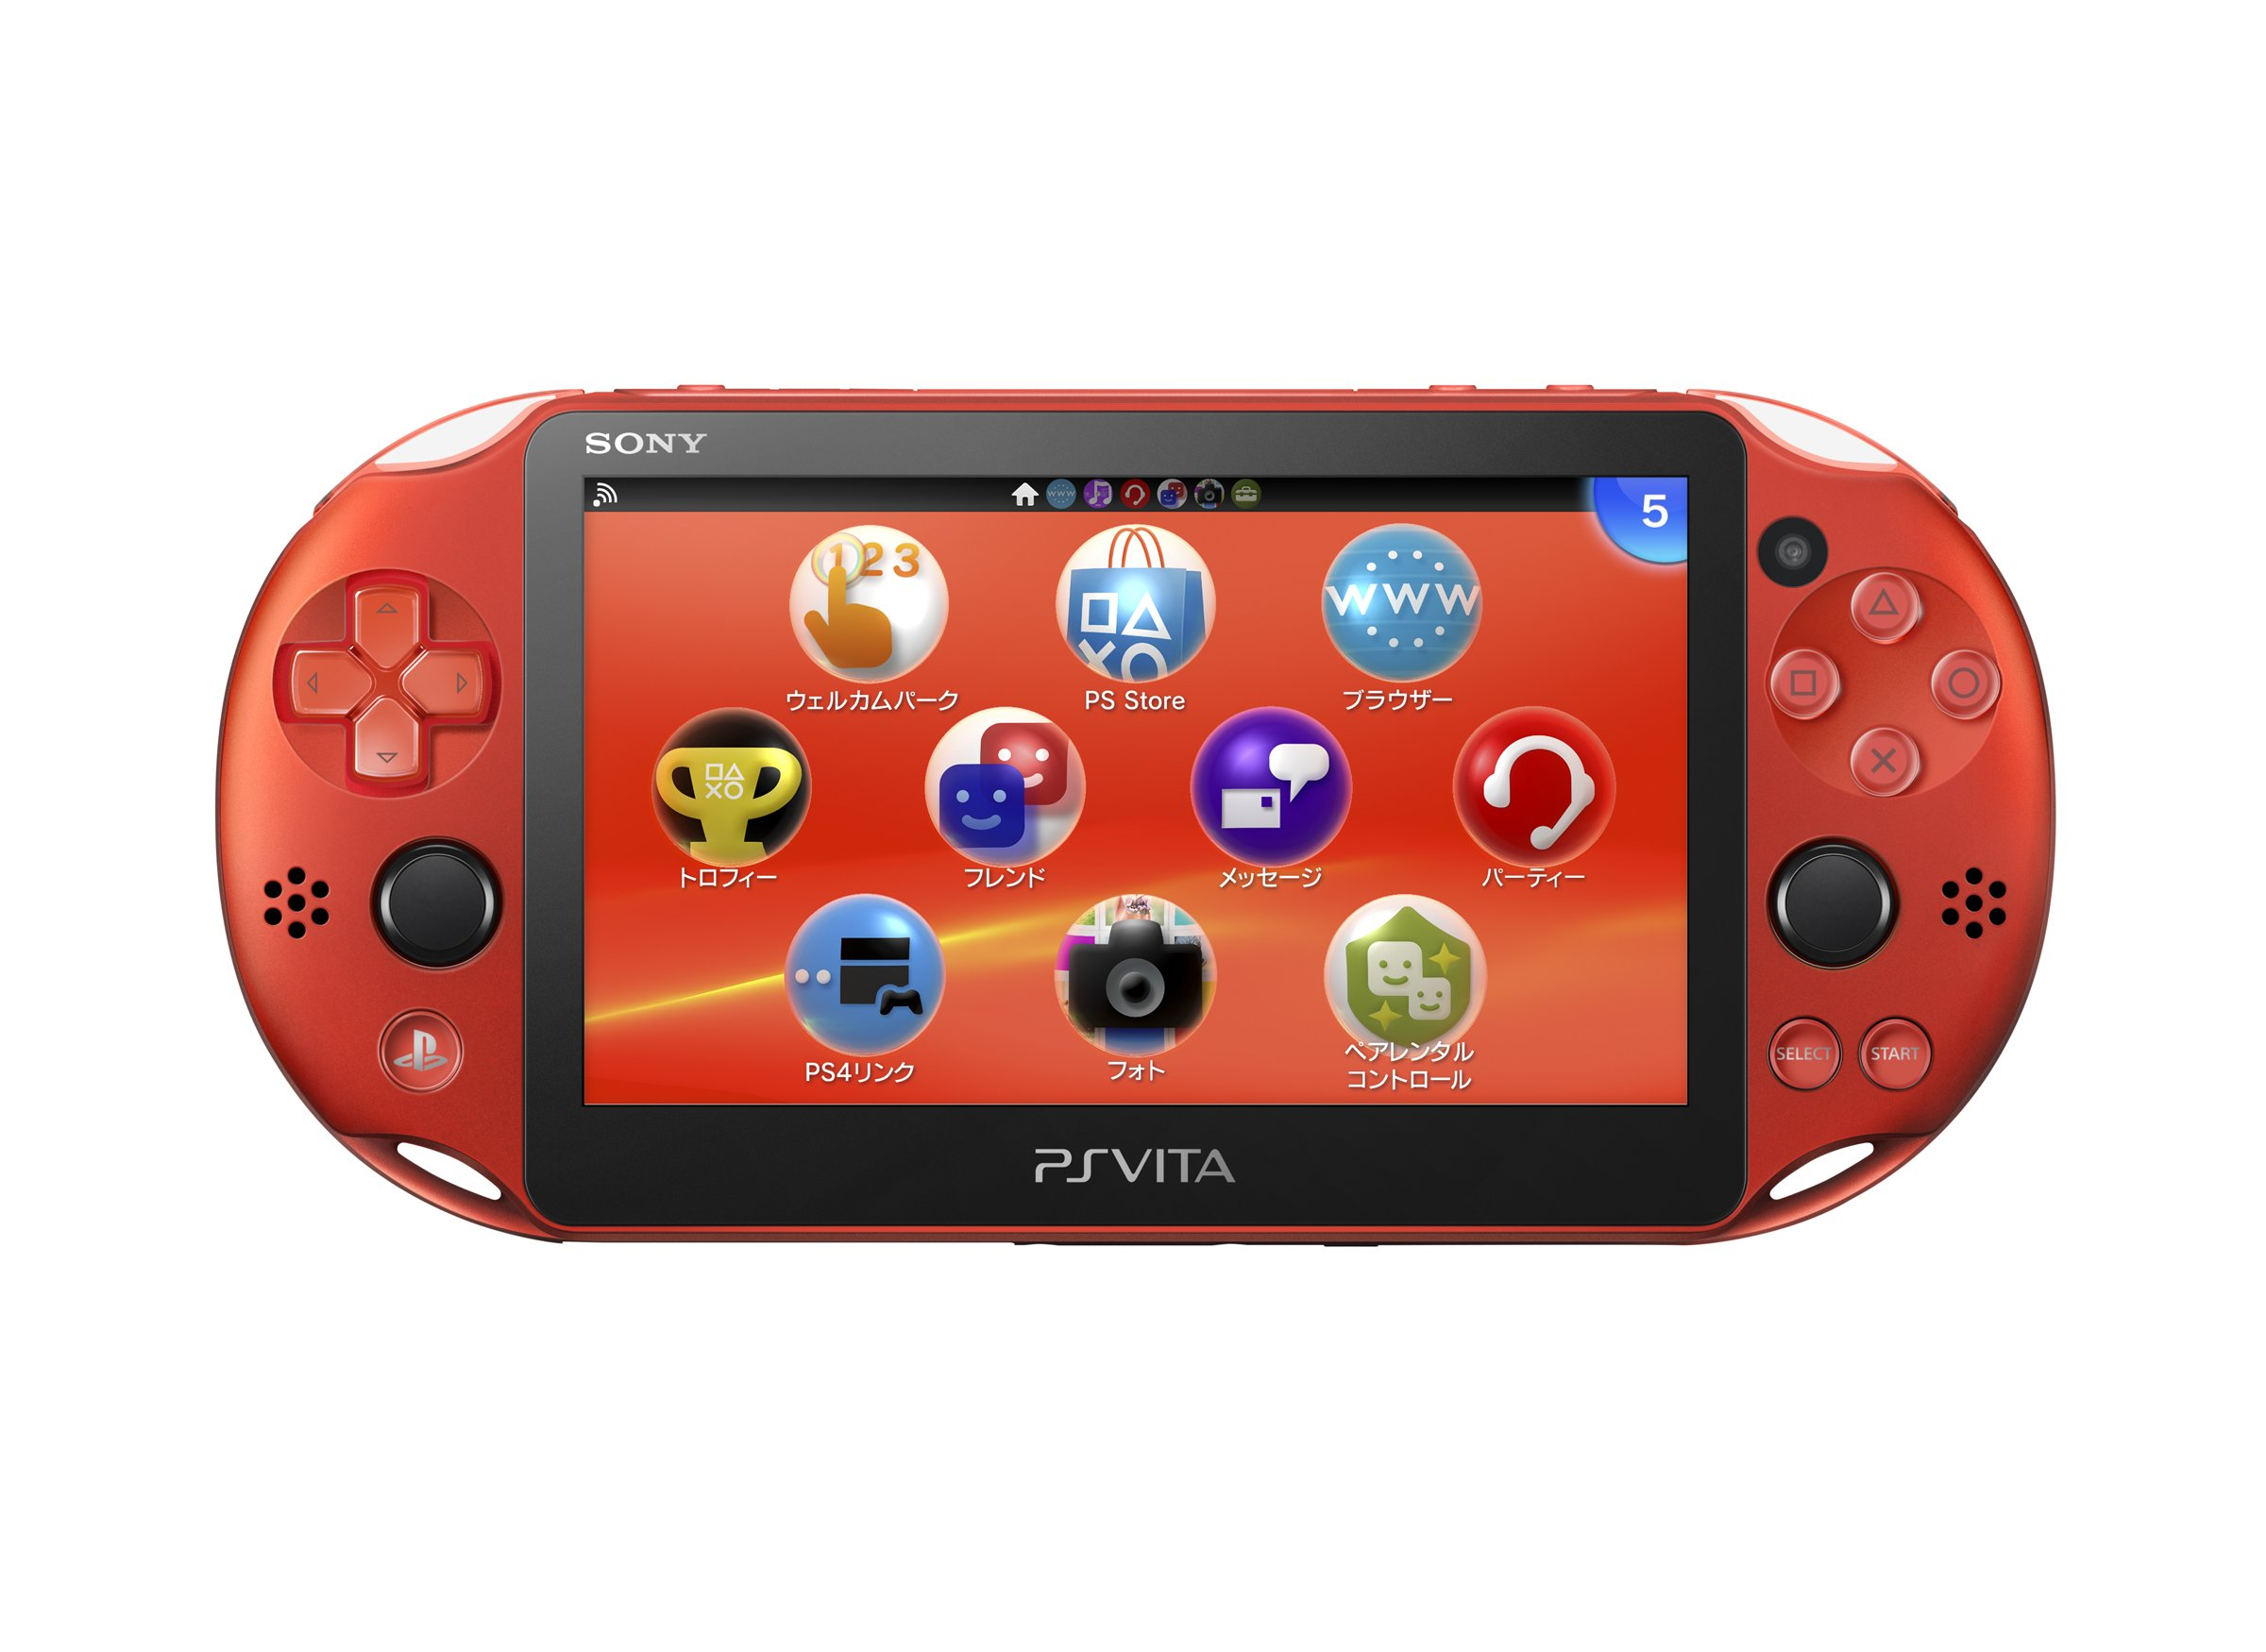 PlayStation Vita Wi-Fi Metallic Red PCH-2000ZA26 (Japan Import) by Sony (Image #3)